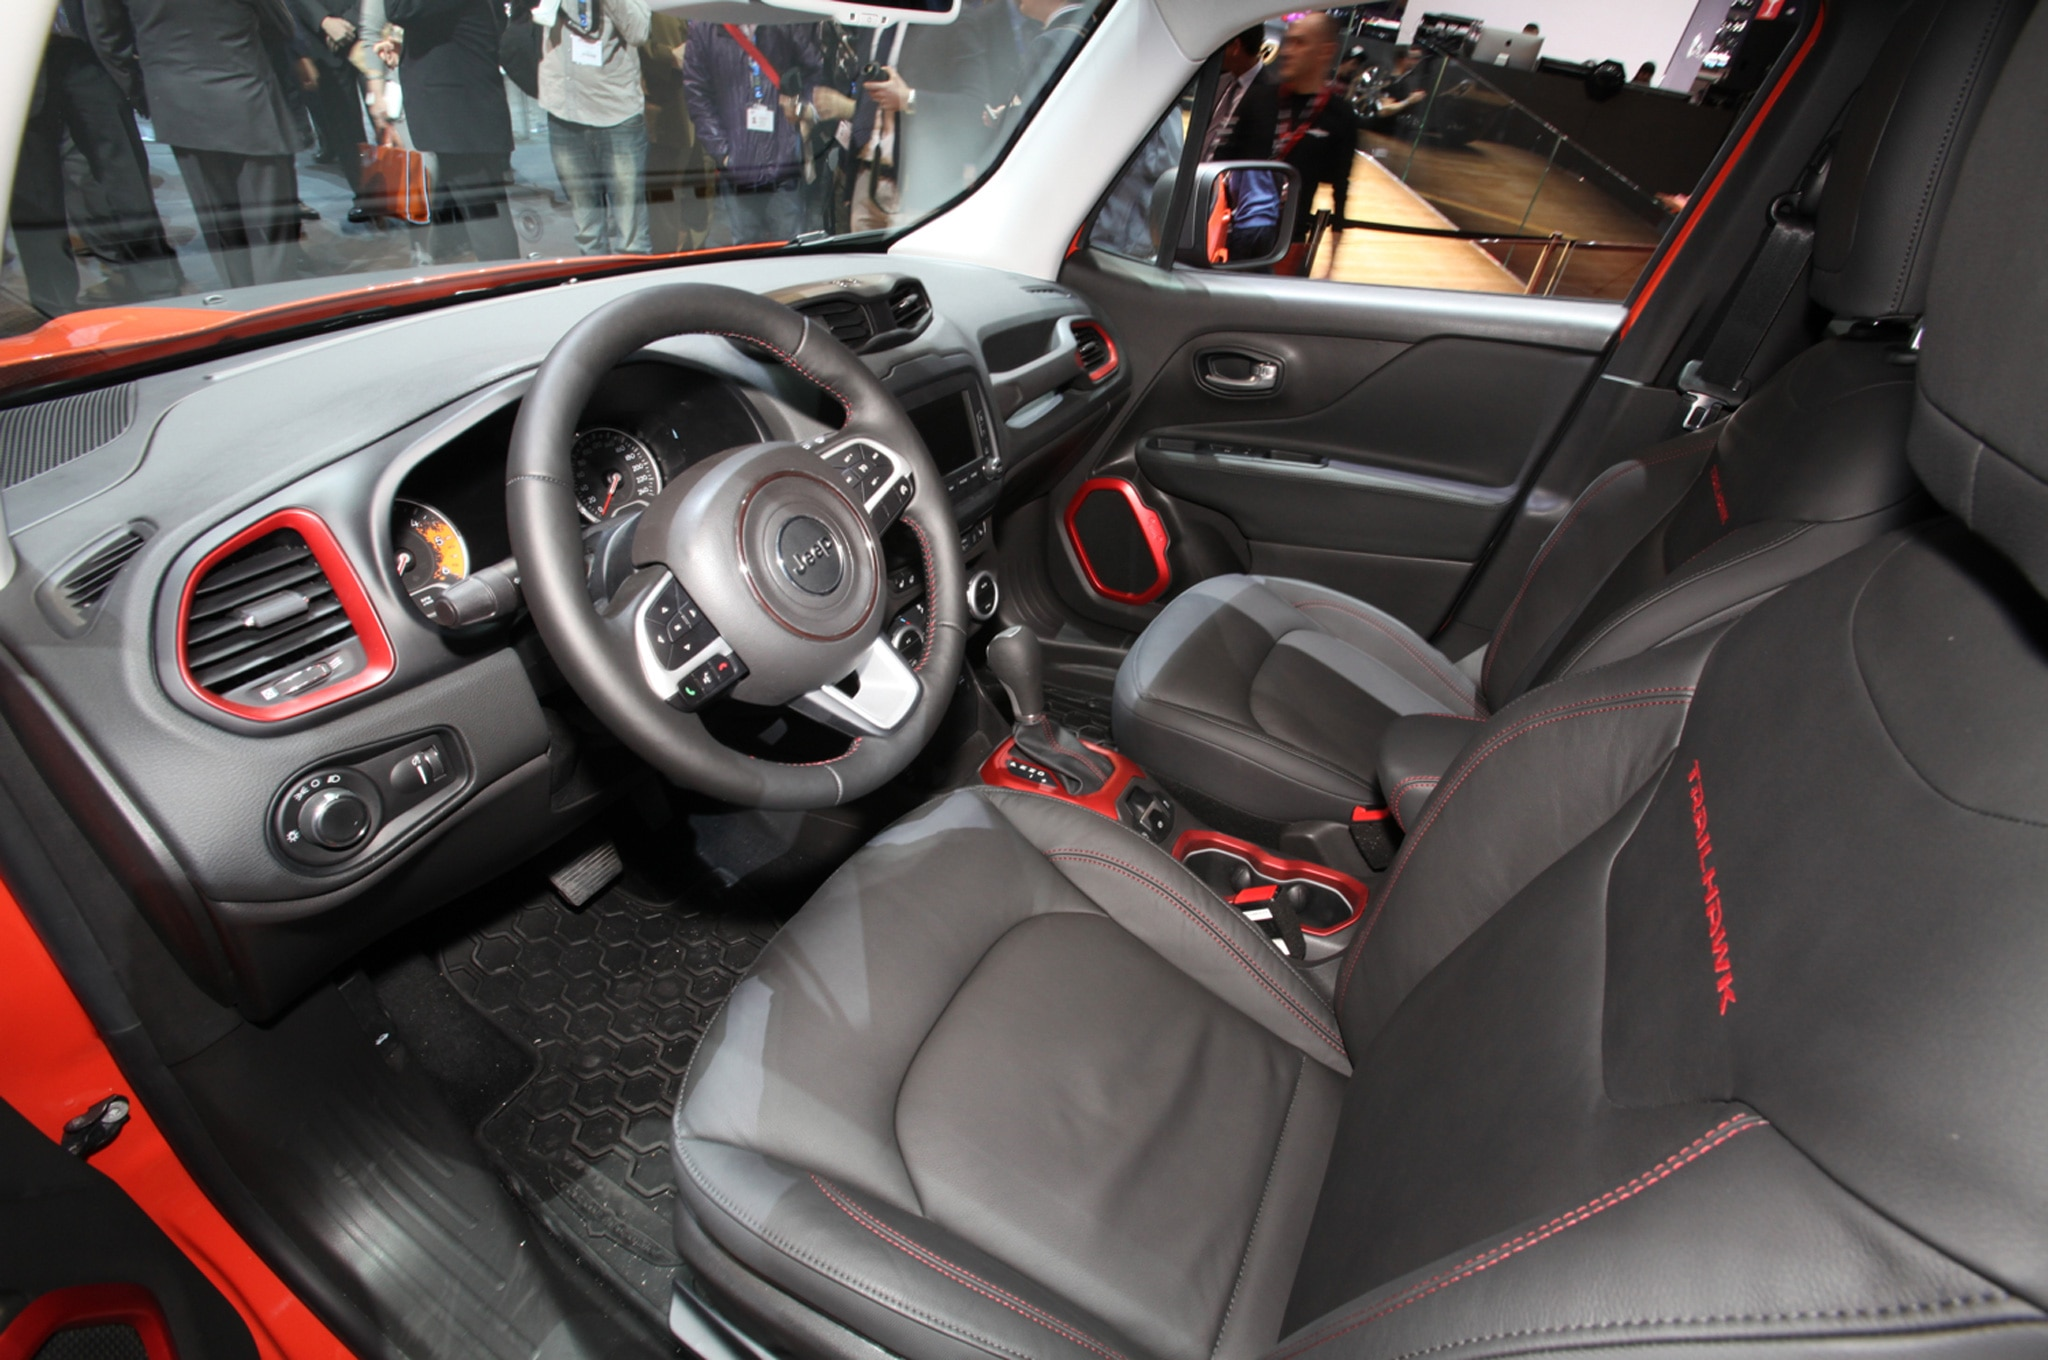 2015 Jeep Renegade Trailhawk show floor interior